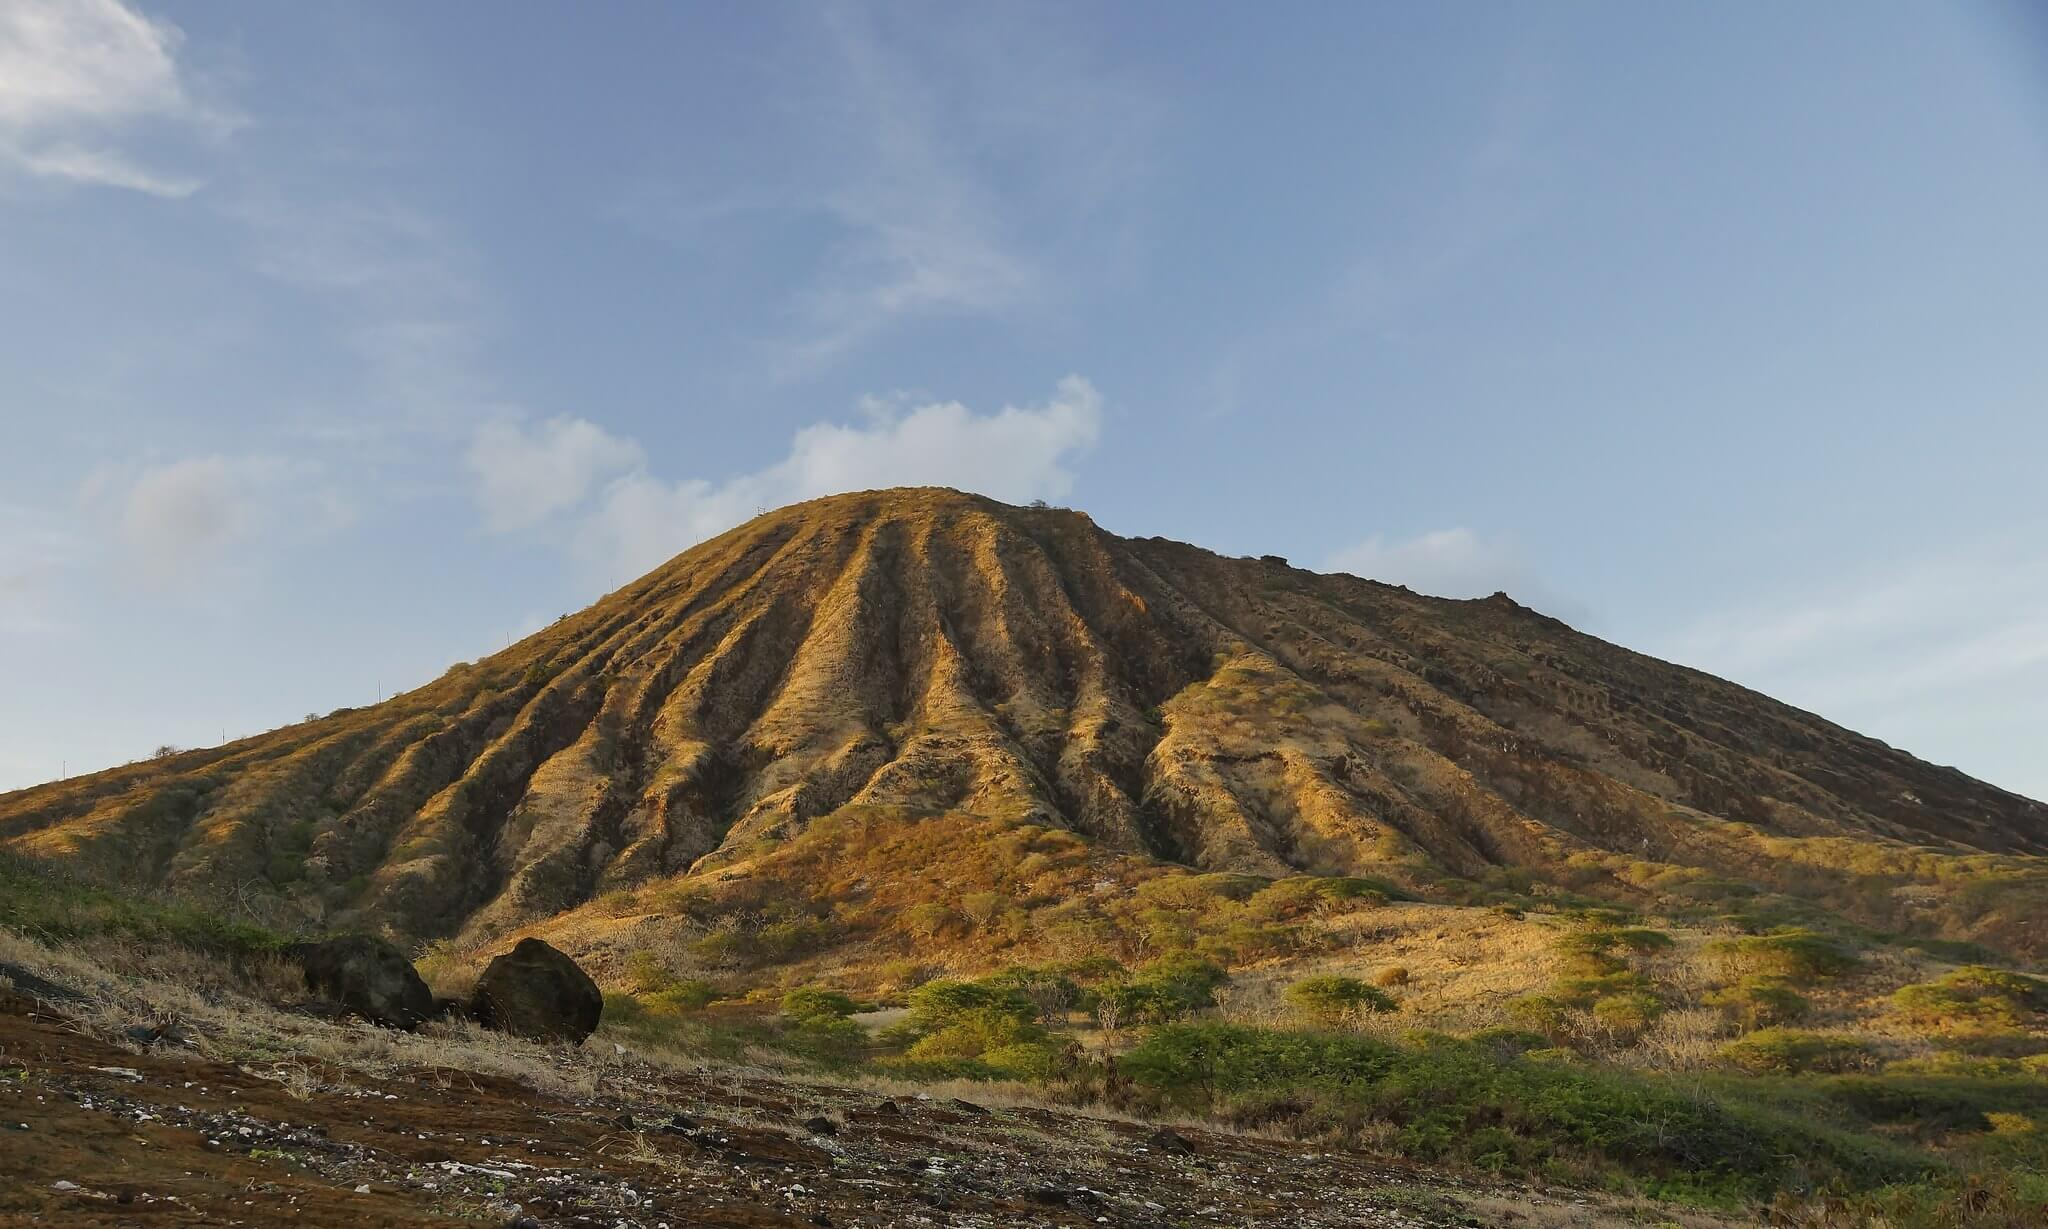 The beautul arch on the Koko Head crater